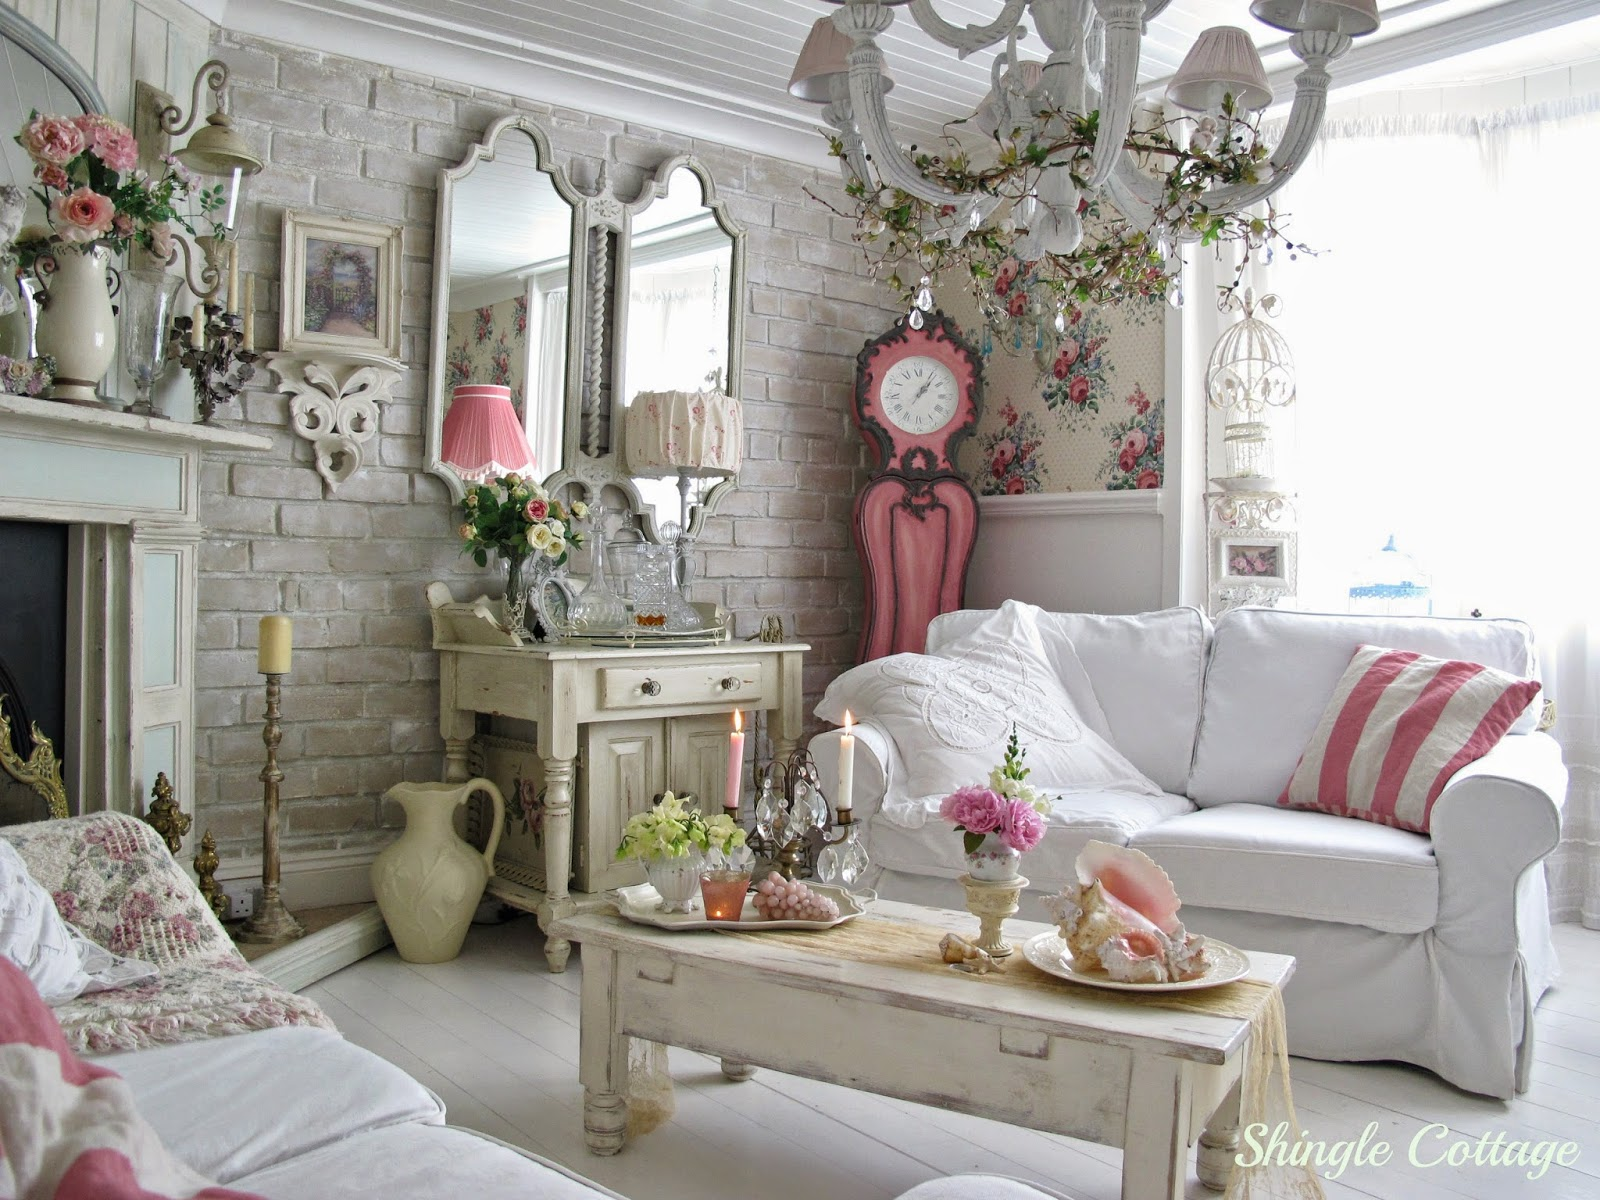 1000 images about shabby chic on pinterest pamela. Black Bedroom Furniture Sets. Home Design Ideas